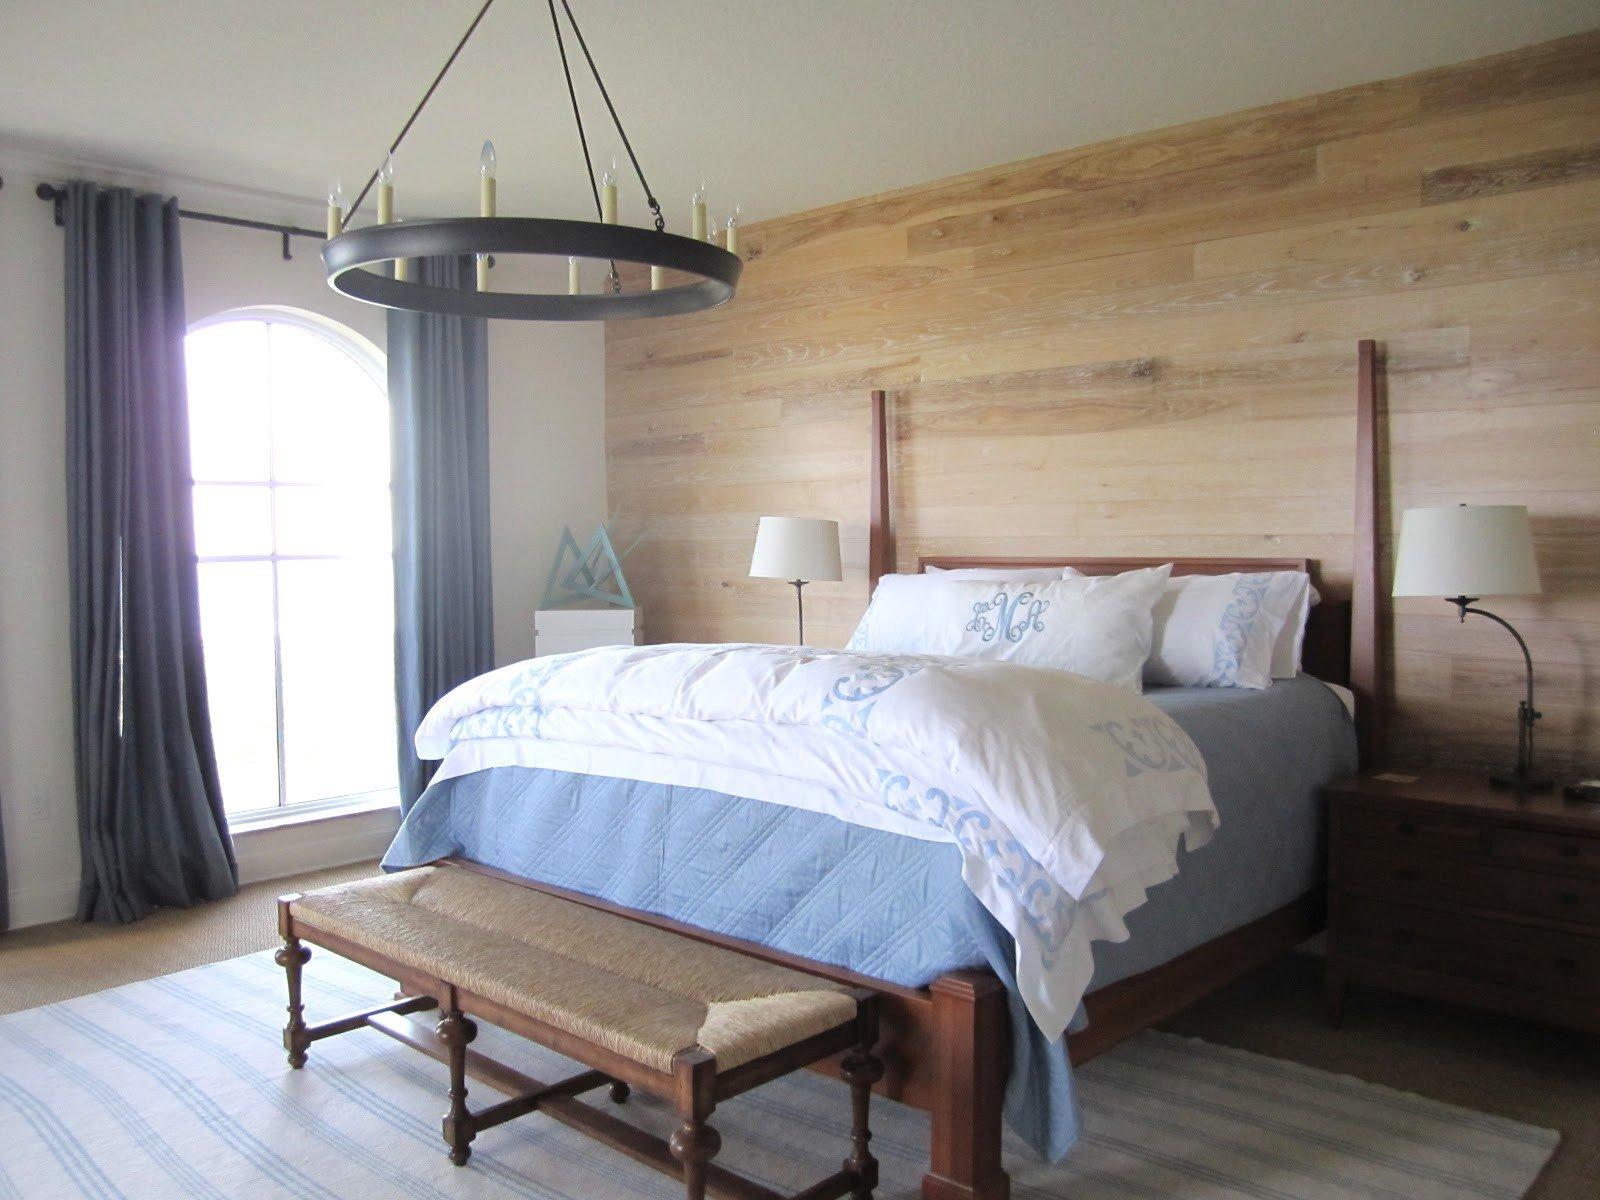 Beach Wall Decor for Bedroom New Classic • Casual • Home Great Ideas for Beach Inspired Bedrooms